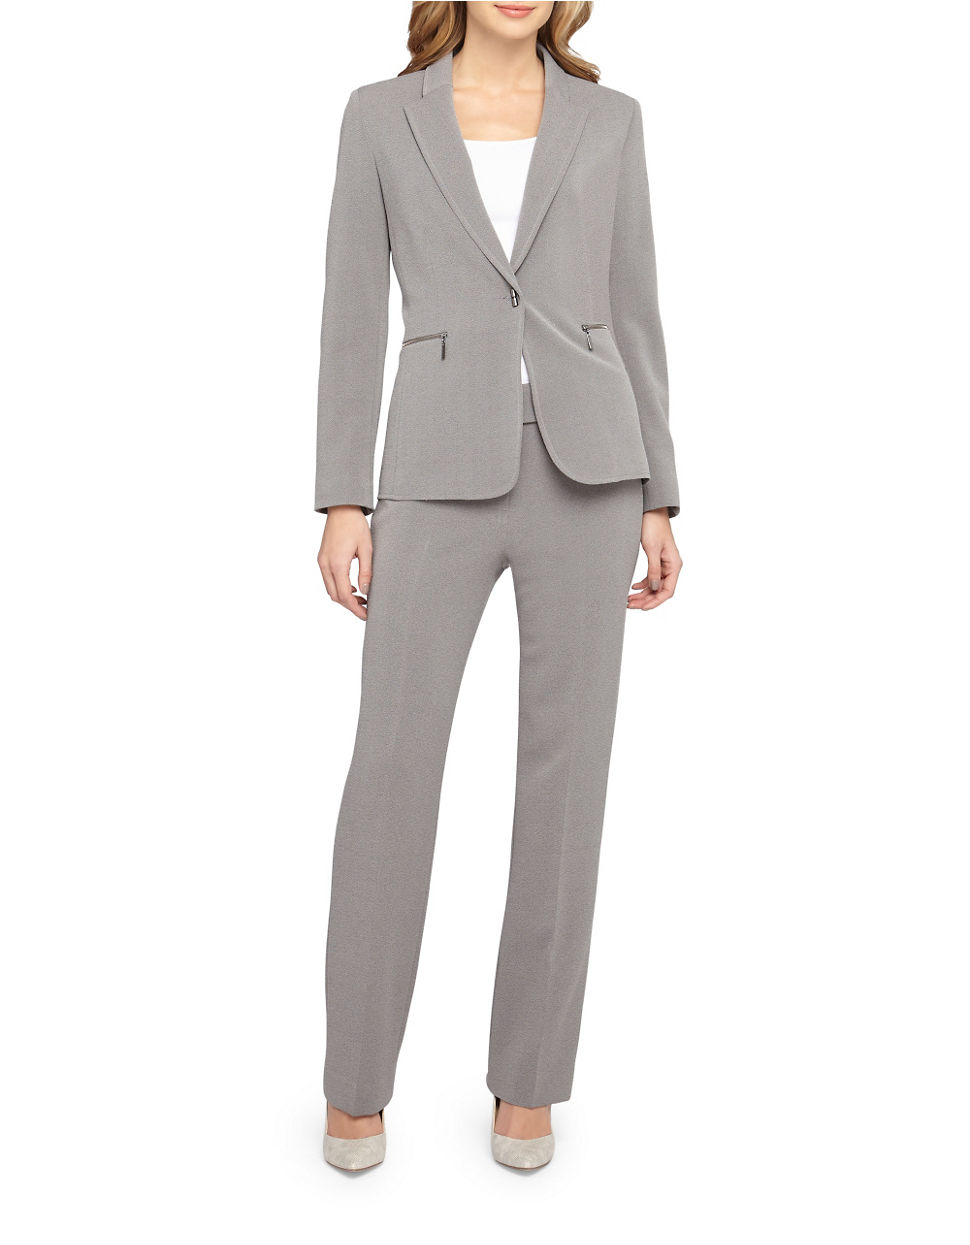 4a4d59cd0f275 Lyst - Tahari 2-piece Jacket And Pants Set in Gray